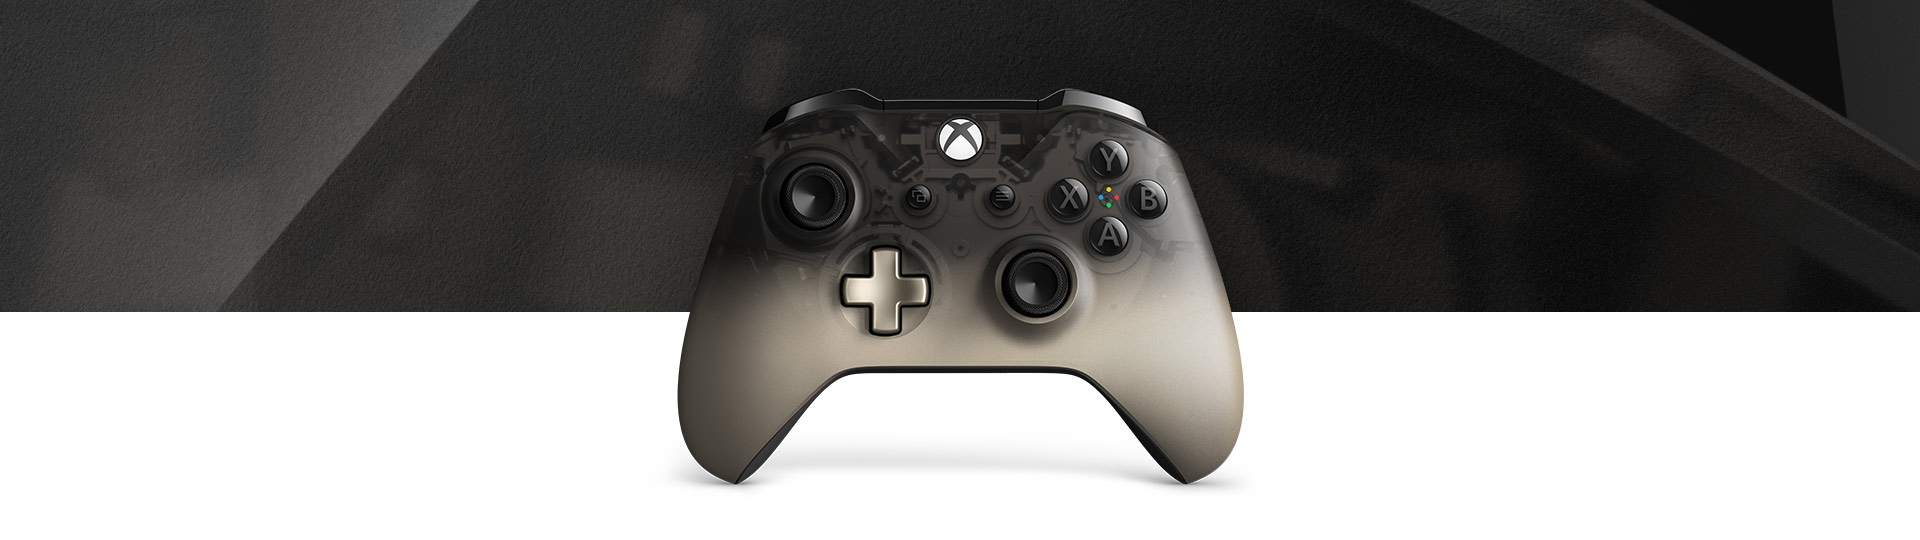 Frontansicht des Xbox Wireless Controller – Phantom Black Special Edition